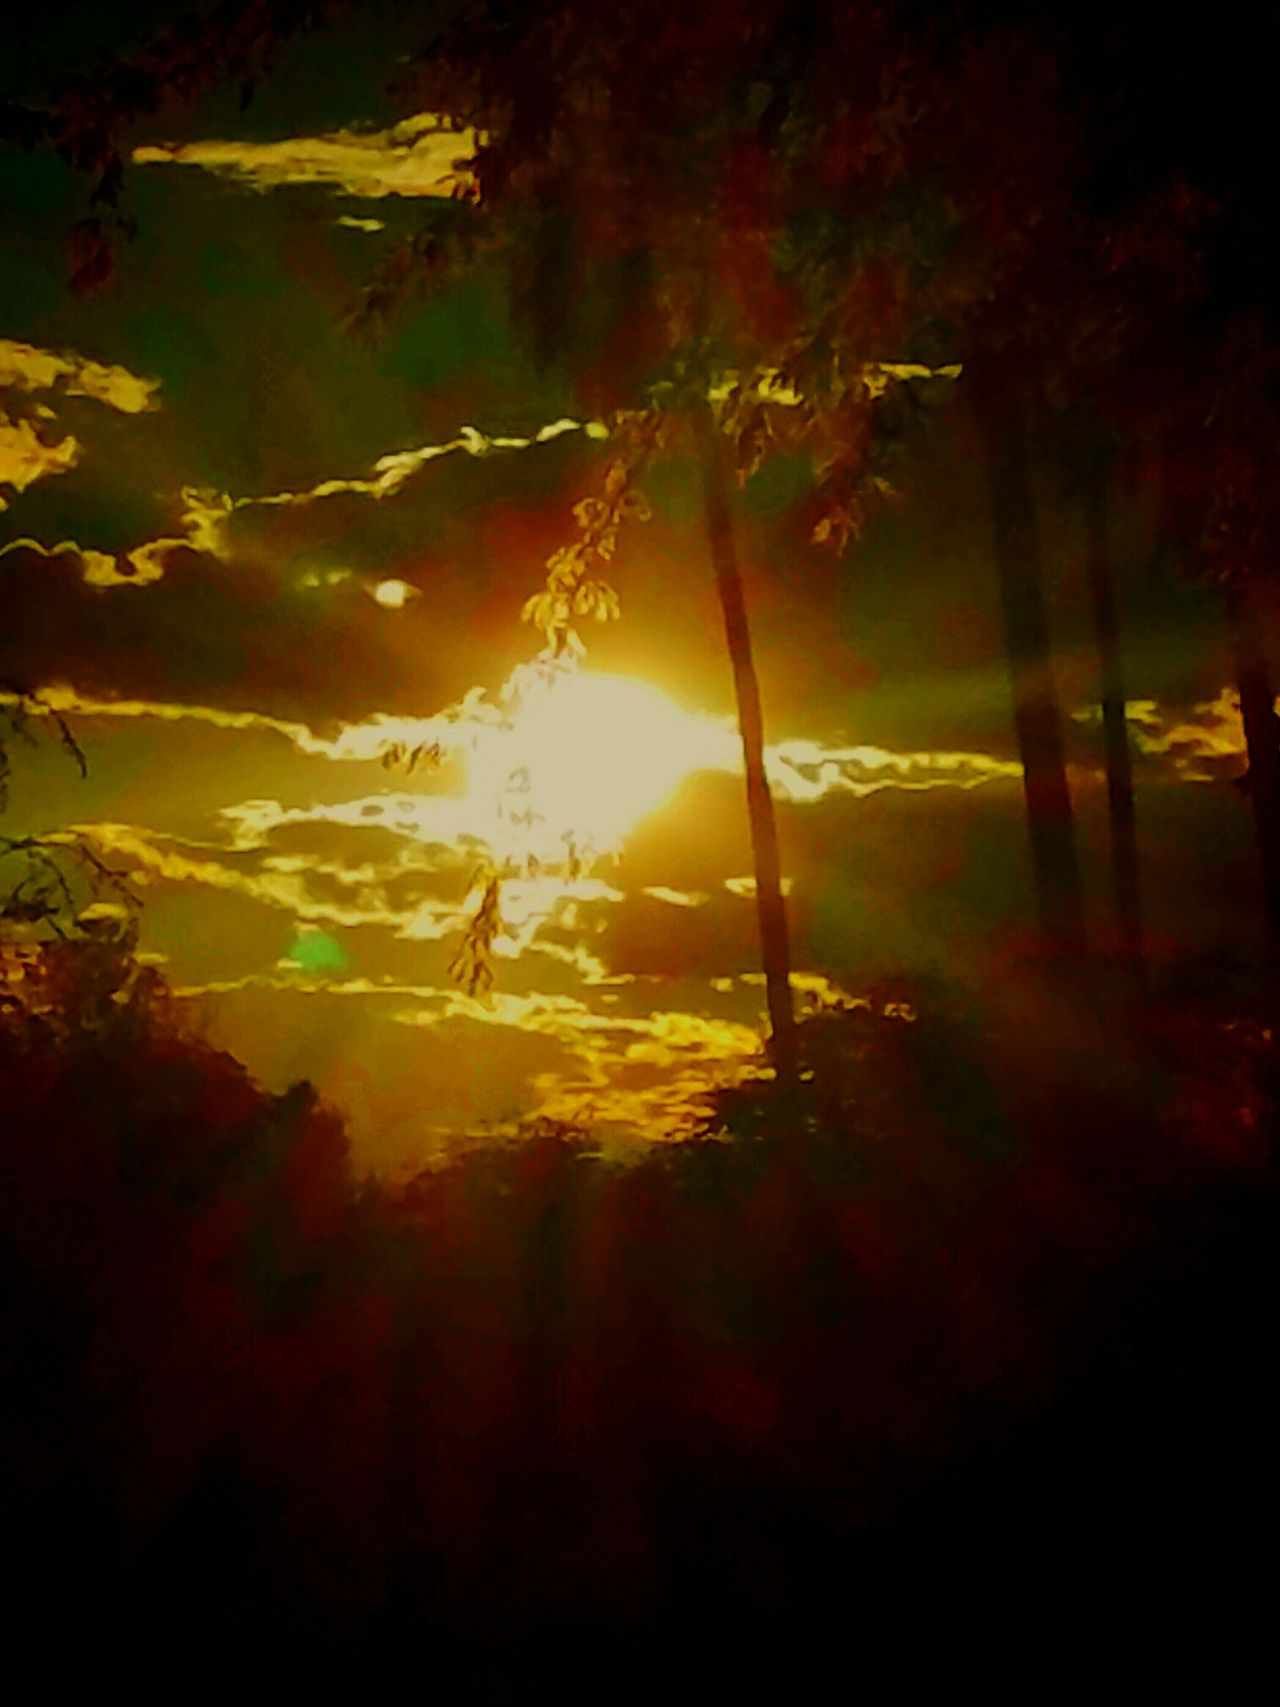 Nature Beauty In Nature Silhouette Tree Landscape Sunbeam Arizonasky Enjoy The View Blessed & Thankful :) Dramatic Sky Look Up And Thrive Beauty In Ordinary Things Blessings Love Nature Sundown Peaceful Evening Unforgettablemoments Beautiful Sky